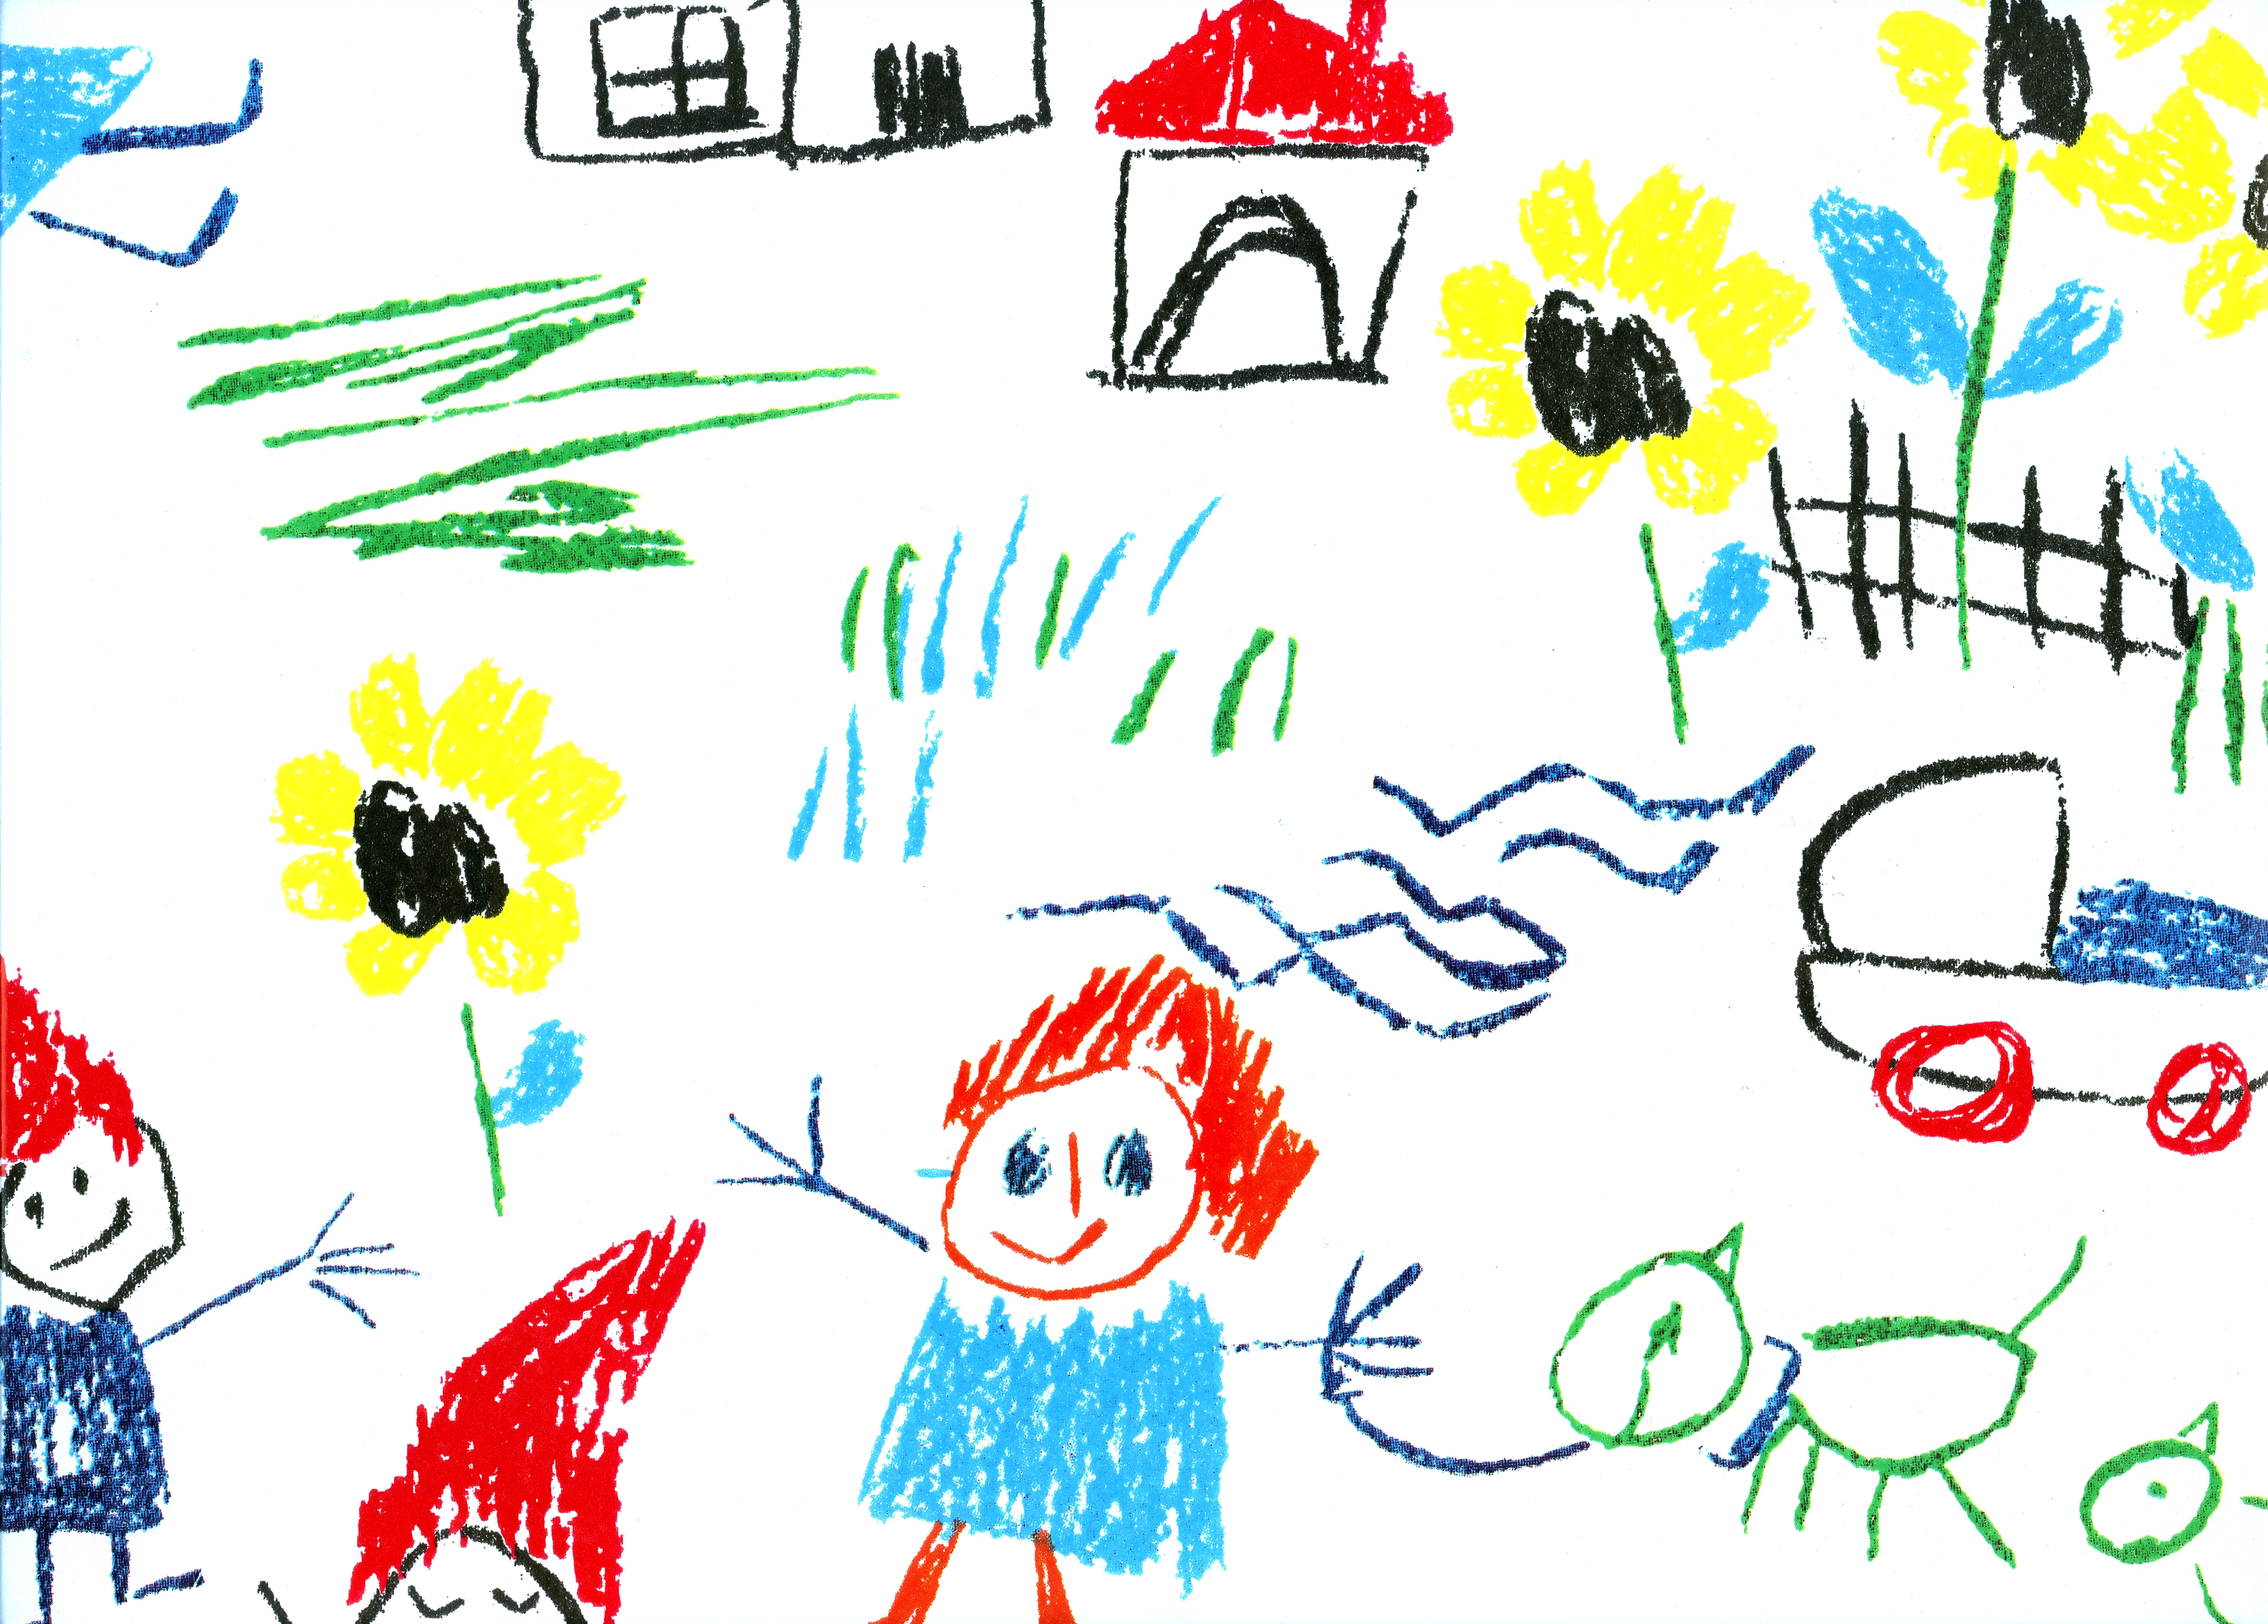 7020x5028 Little Artists Letting Kids Draw On The Walls